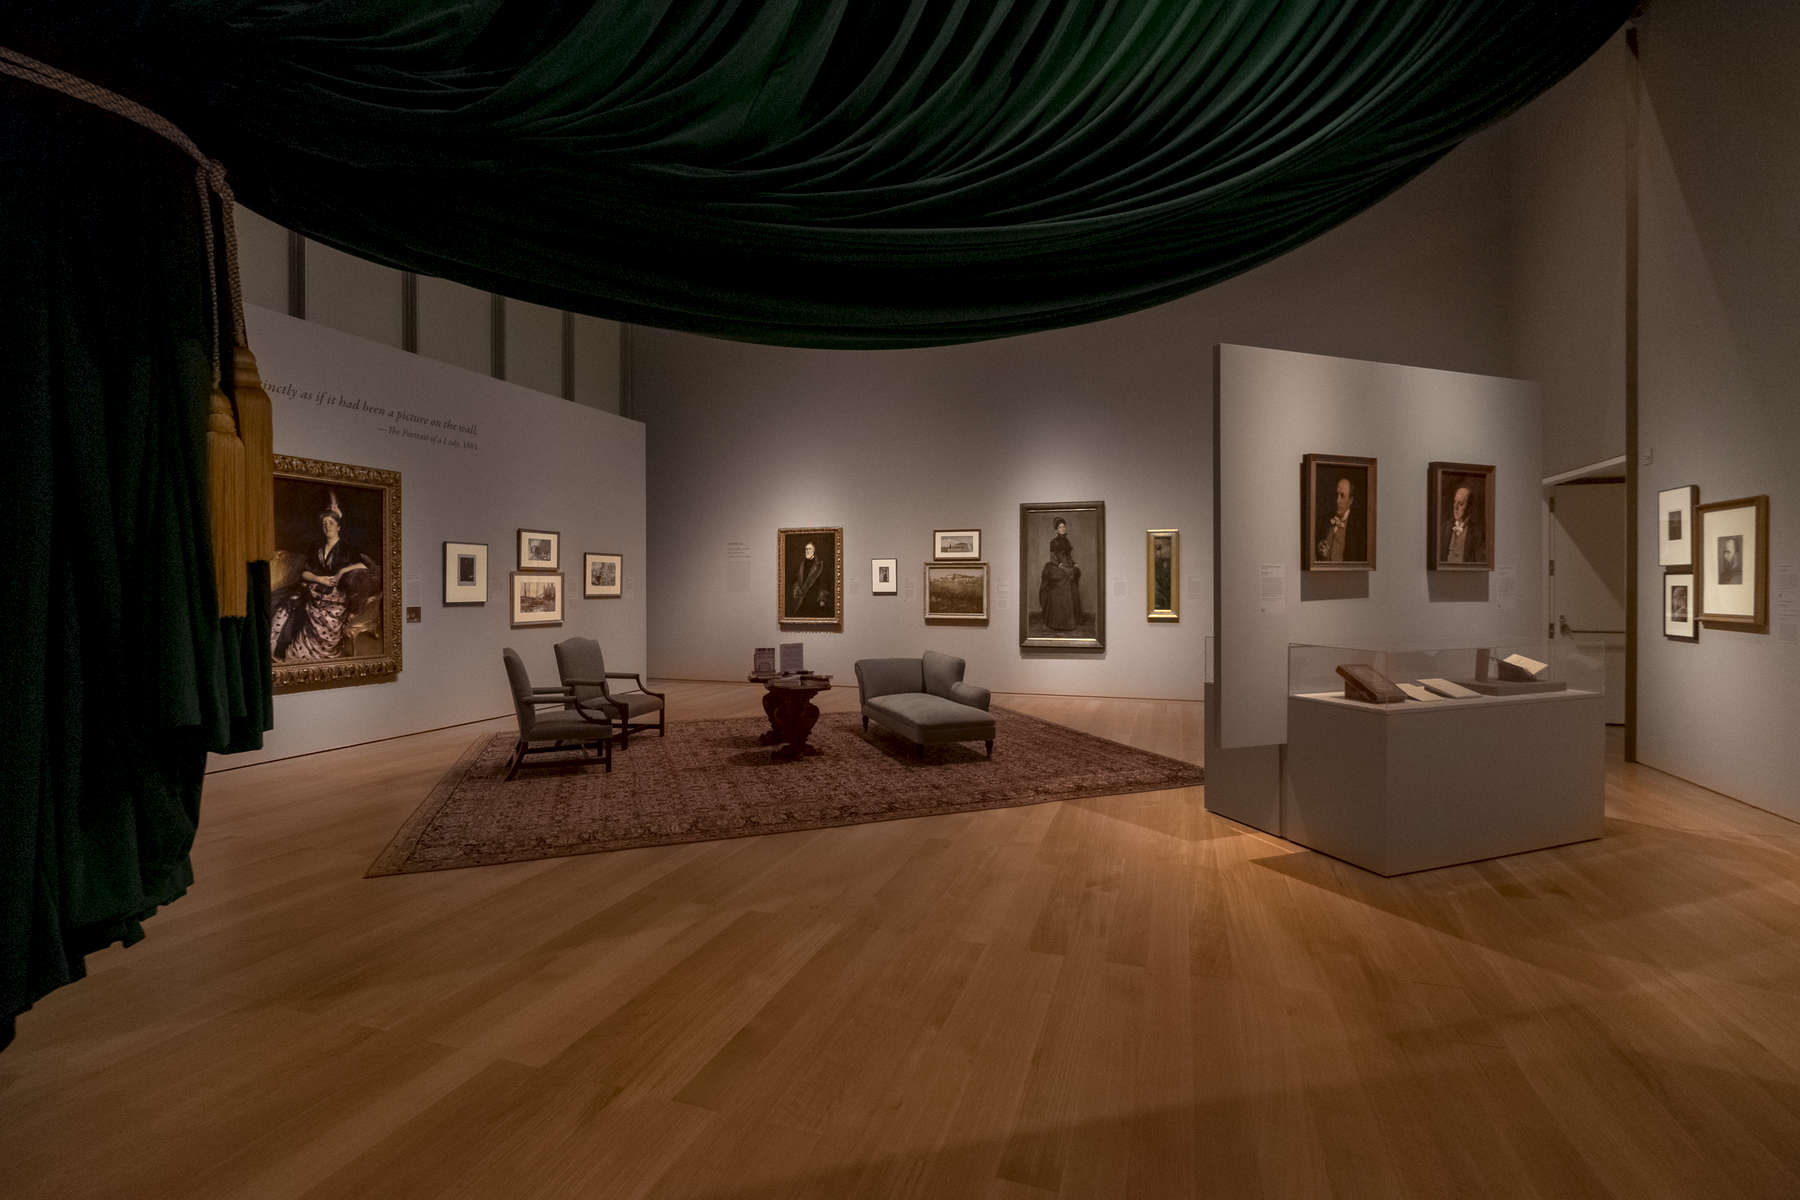 Henry James Exhibition at the Gardner Museum